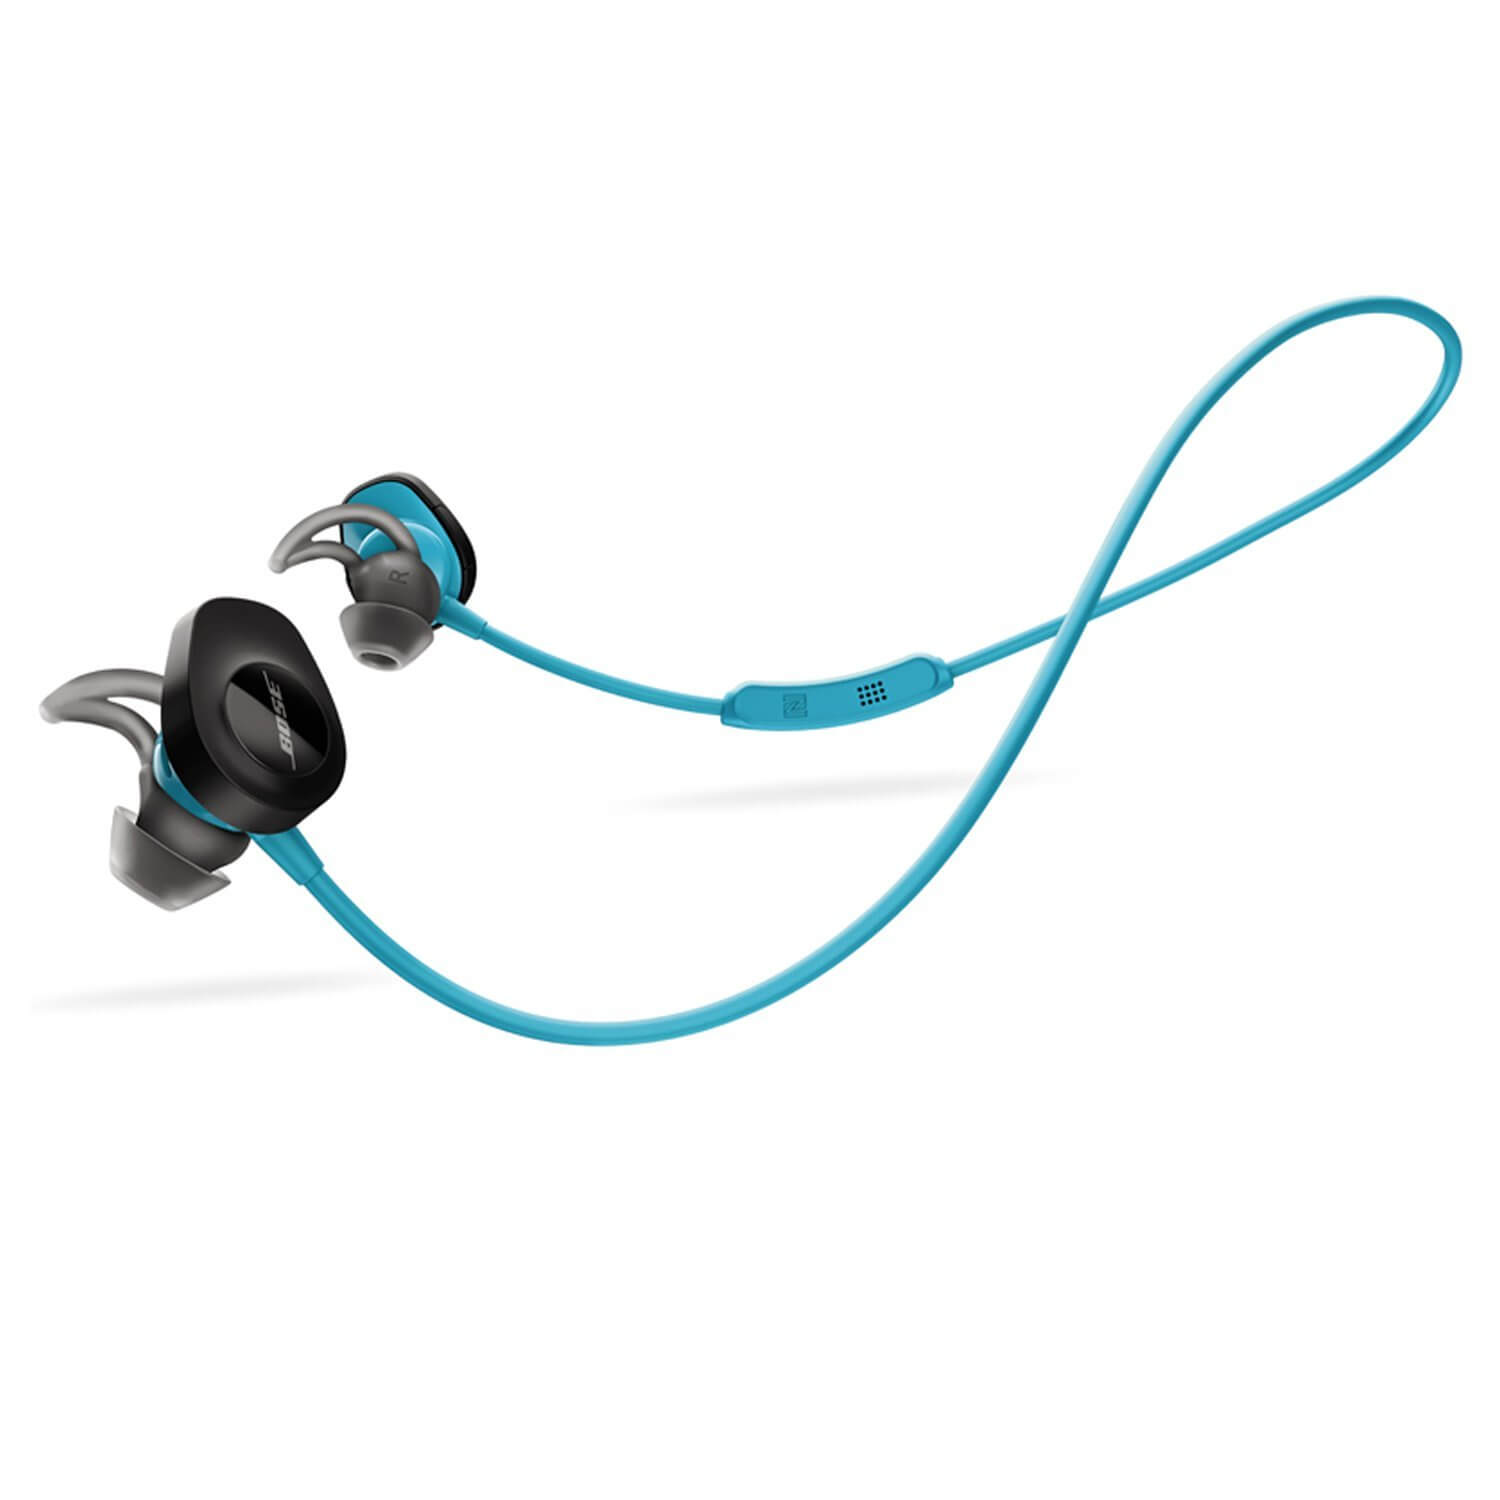 Bose-SoundSport-Wireless-Headphones is the top most water-resistant outdoor earphone